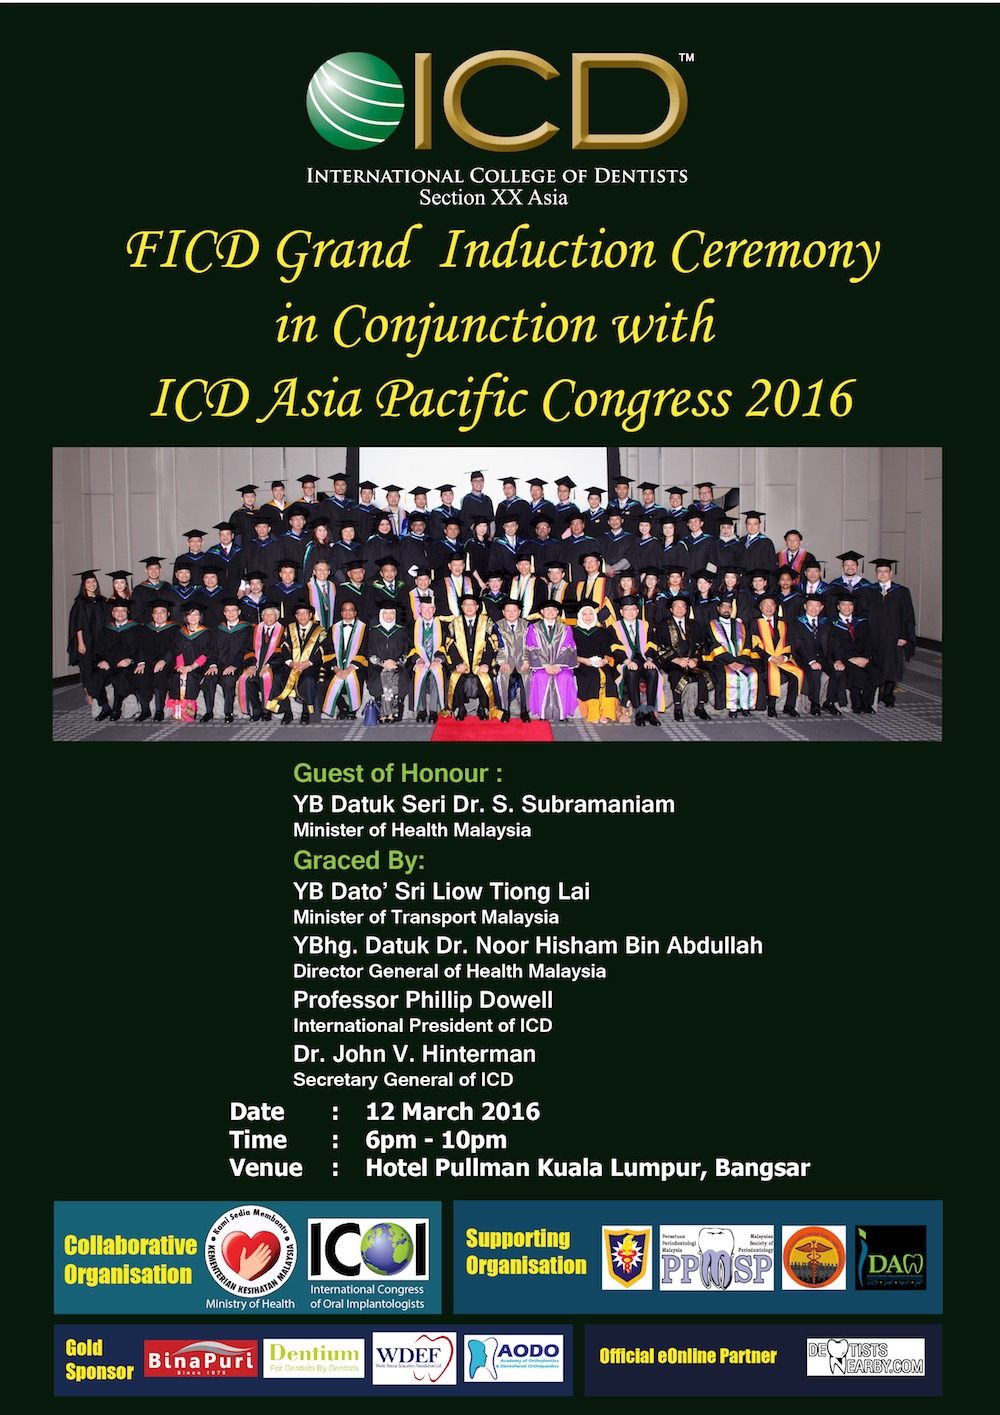 19-2-16-ICD-grand-induction-ceremony